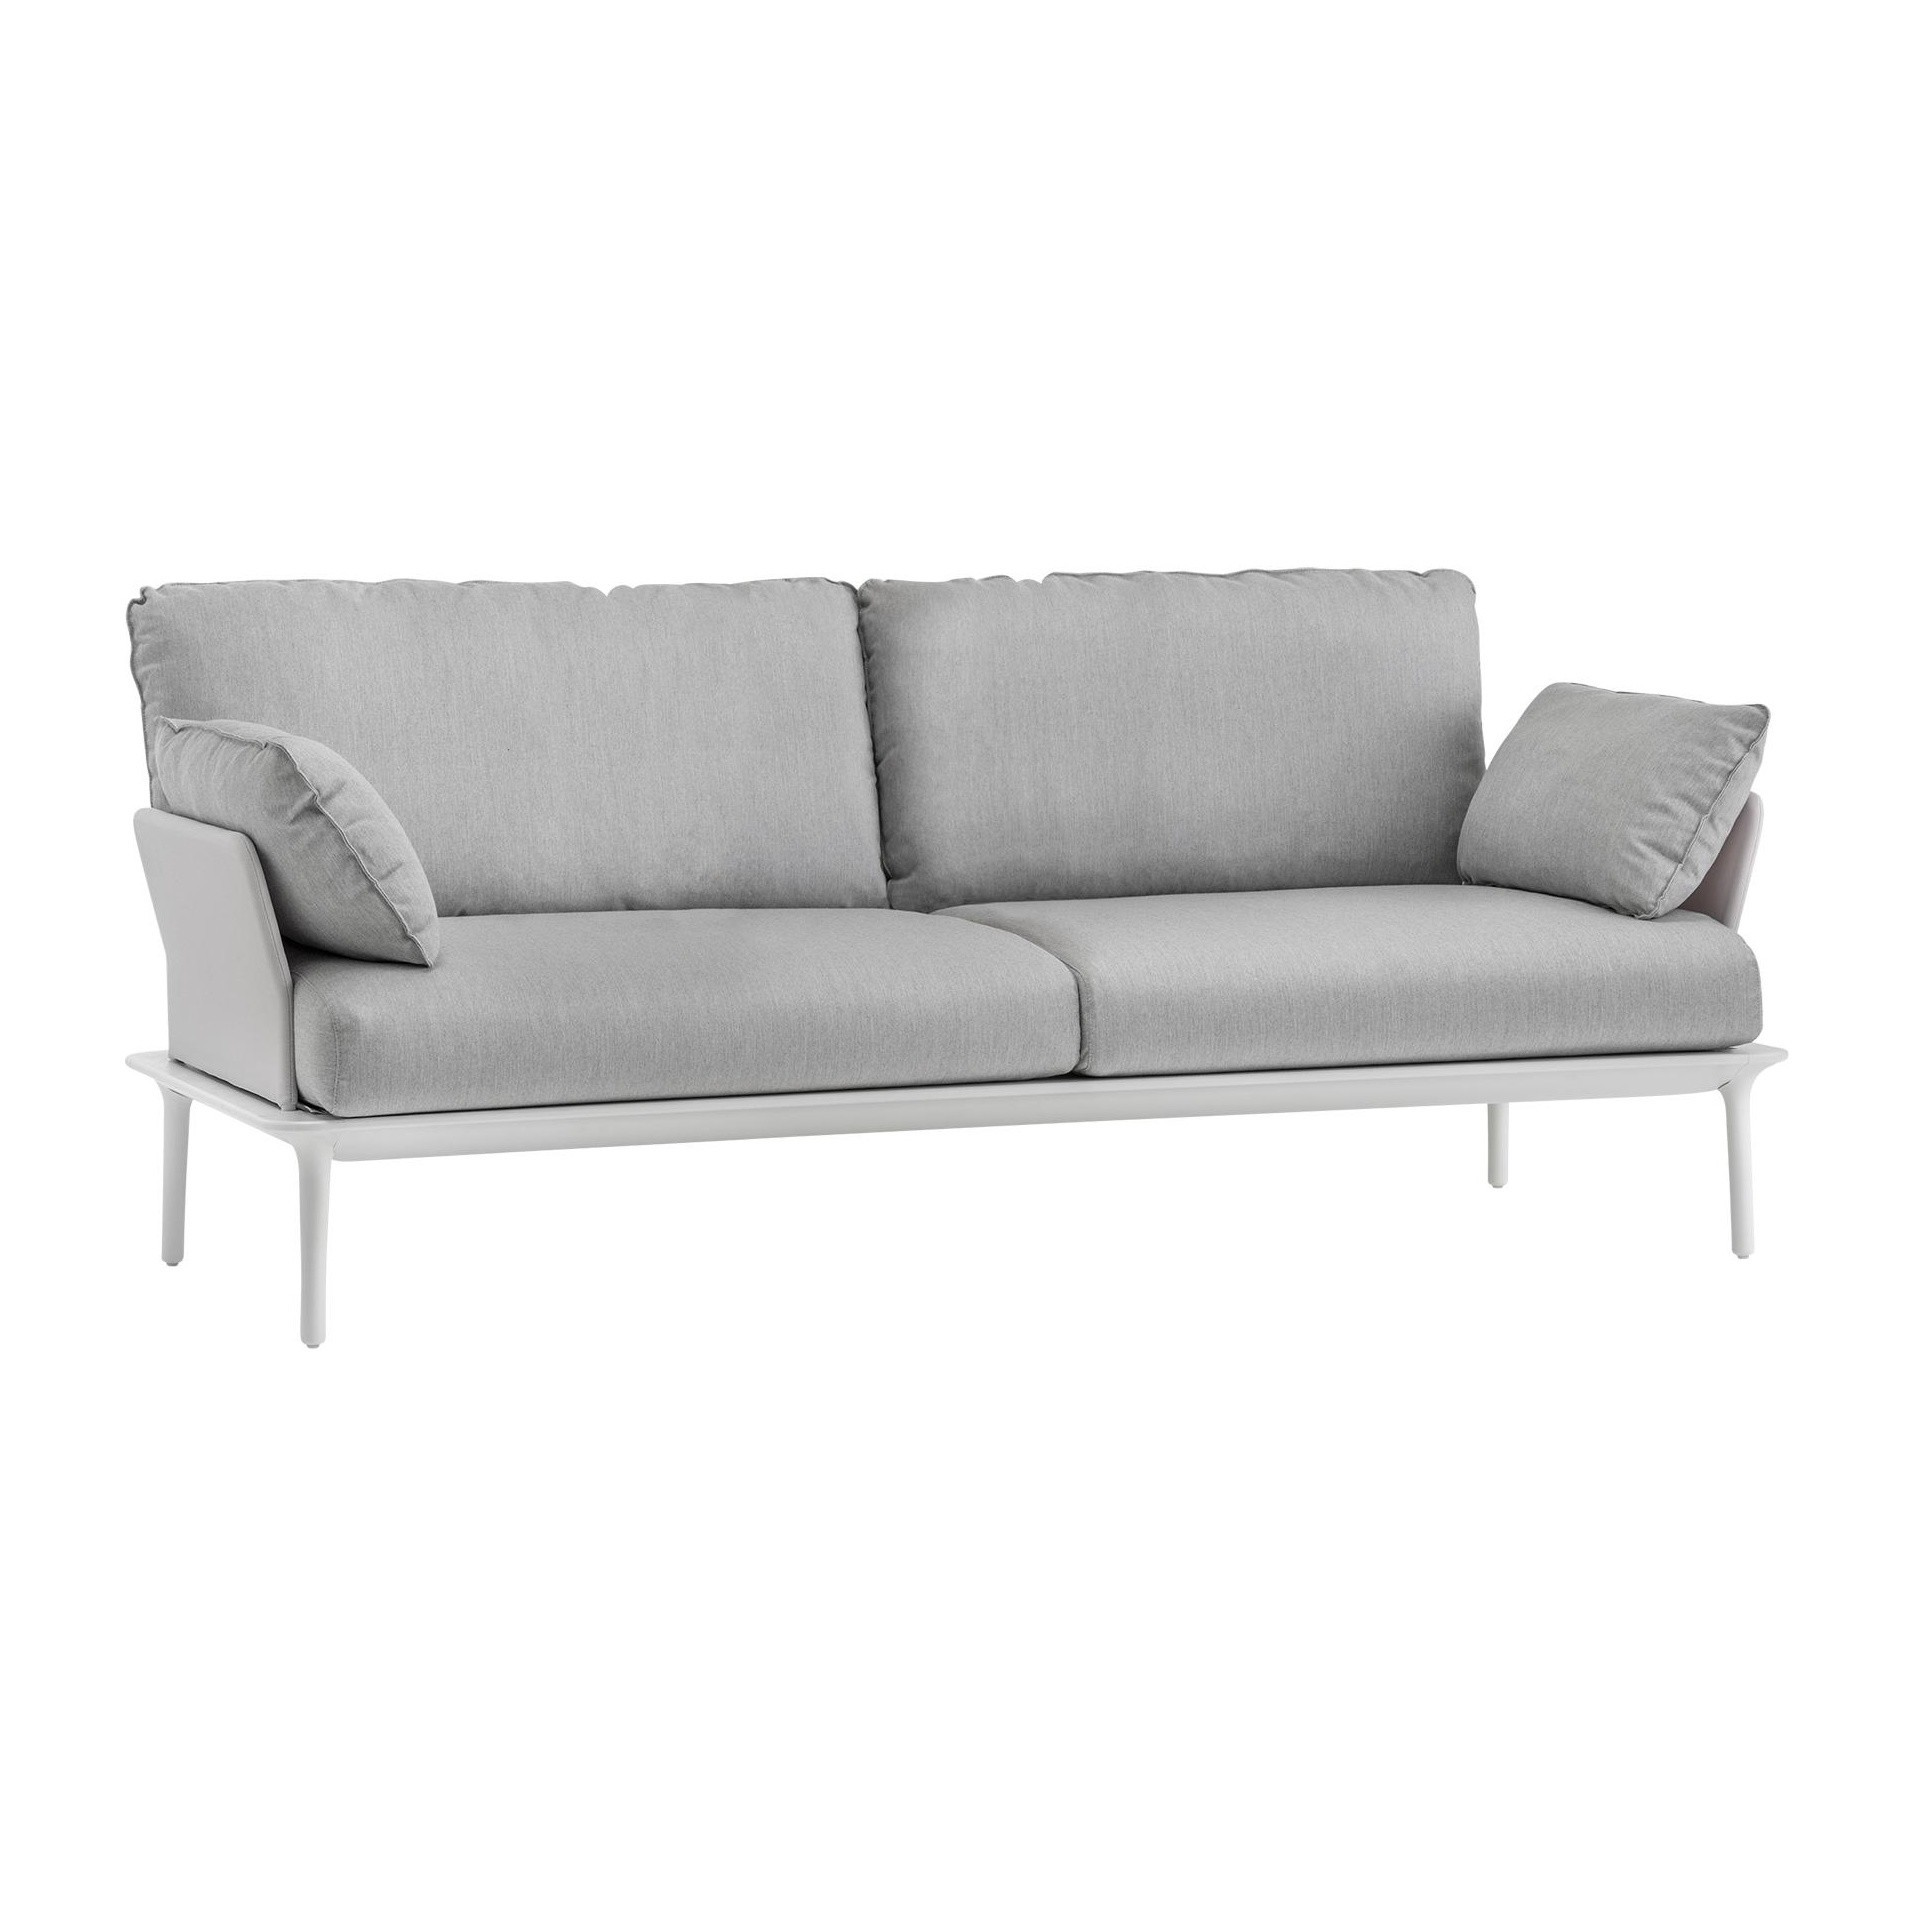 Lounge Sofa 2 Sitzer Outdoor Pedrali Reva Lounge Outdoor 3 Seater Sofa | Ambientedirect